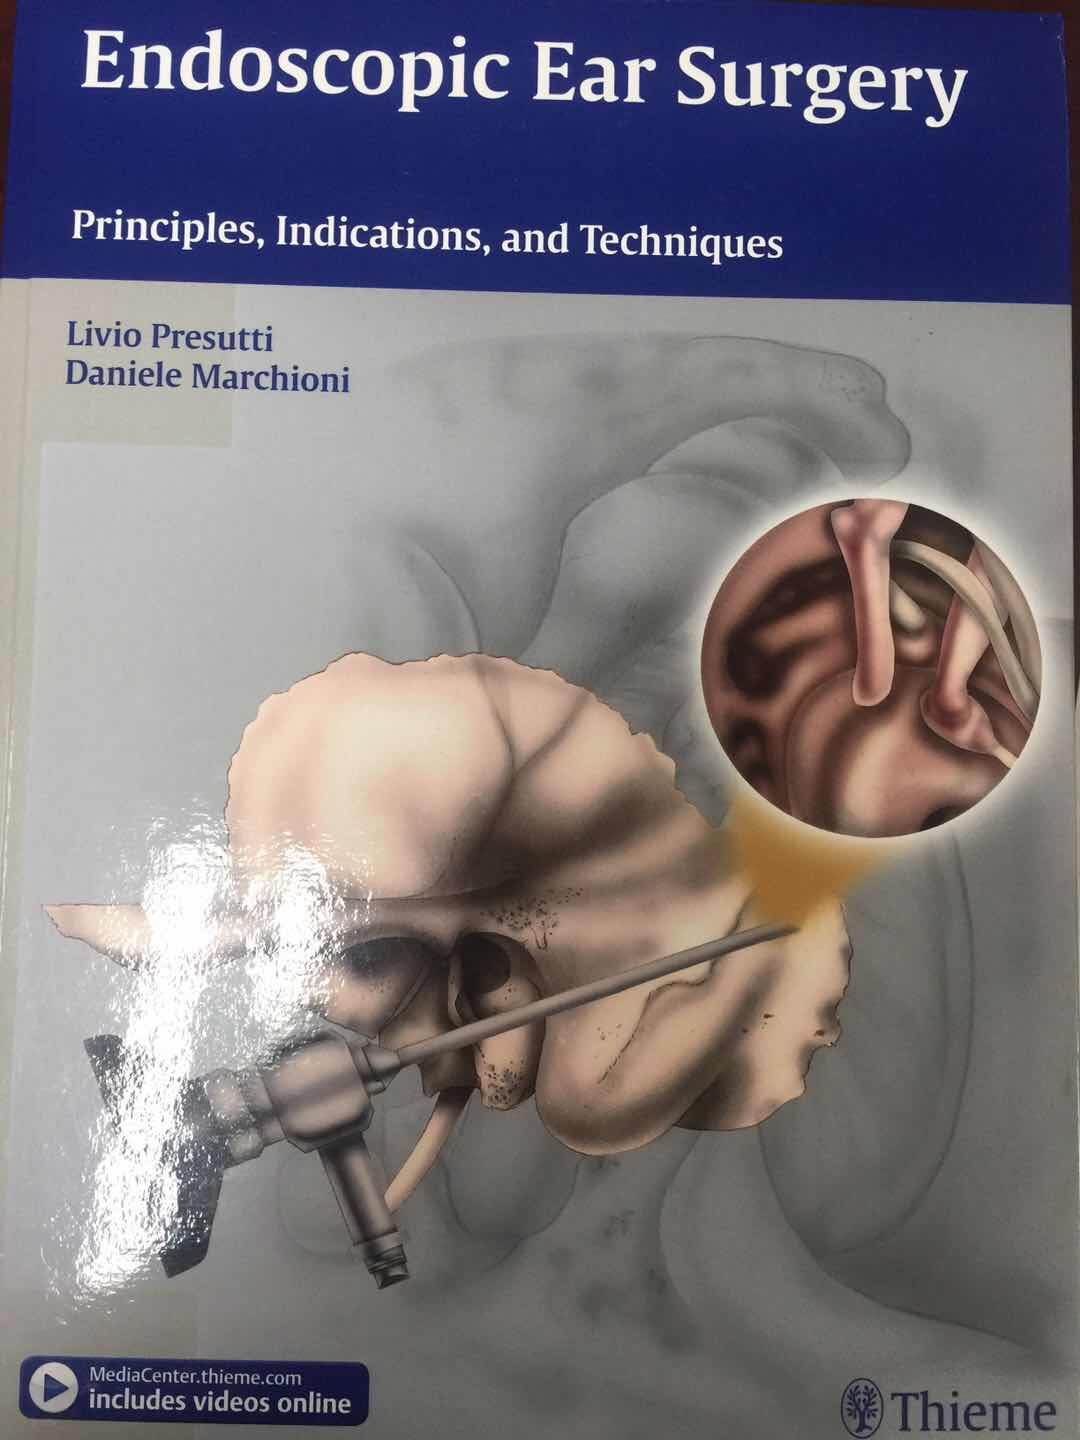 《Endoscopic Ear Surgery:Principles,Indications,and Techniques》